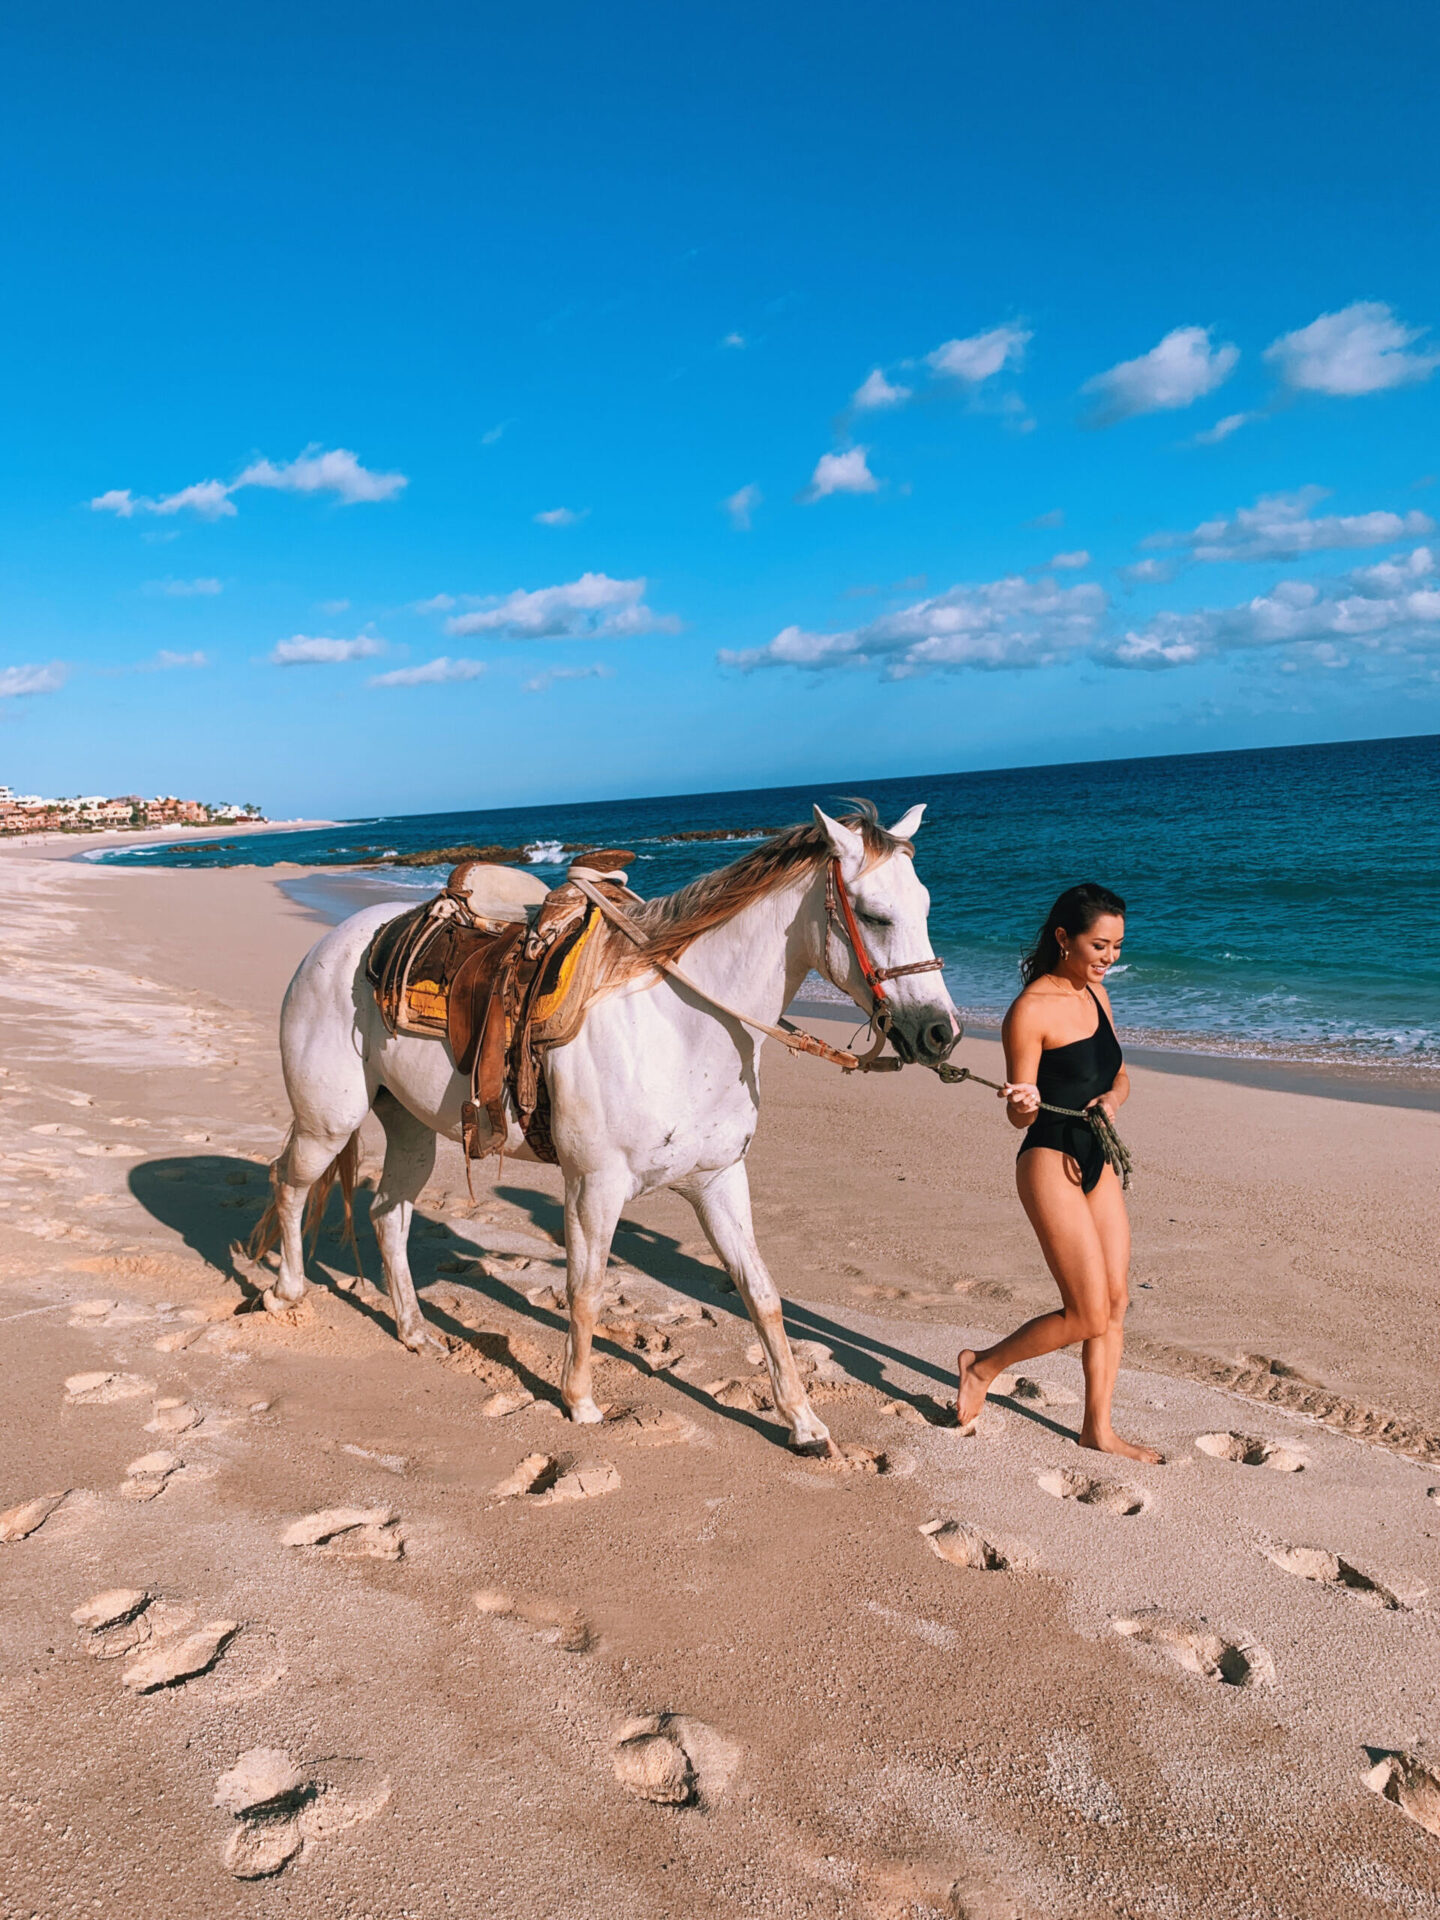 cabo, horse, beach, travel, mexico, revolve, bathing suit